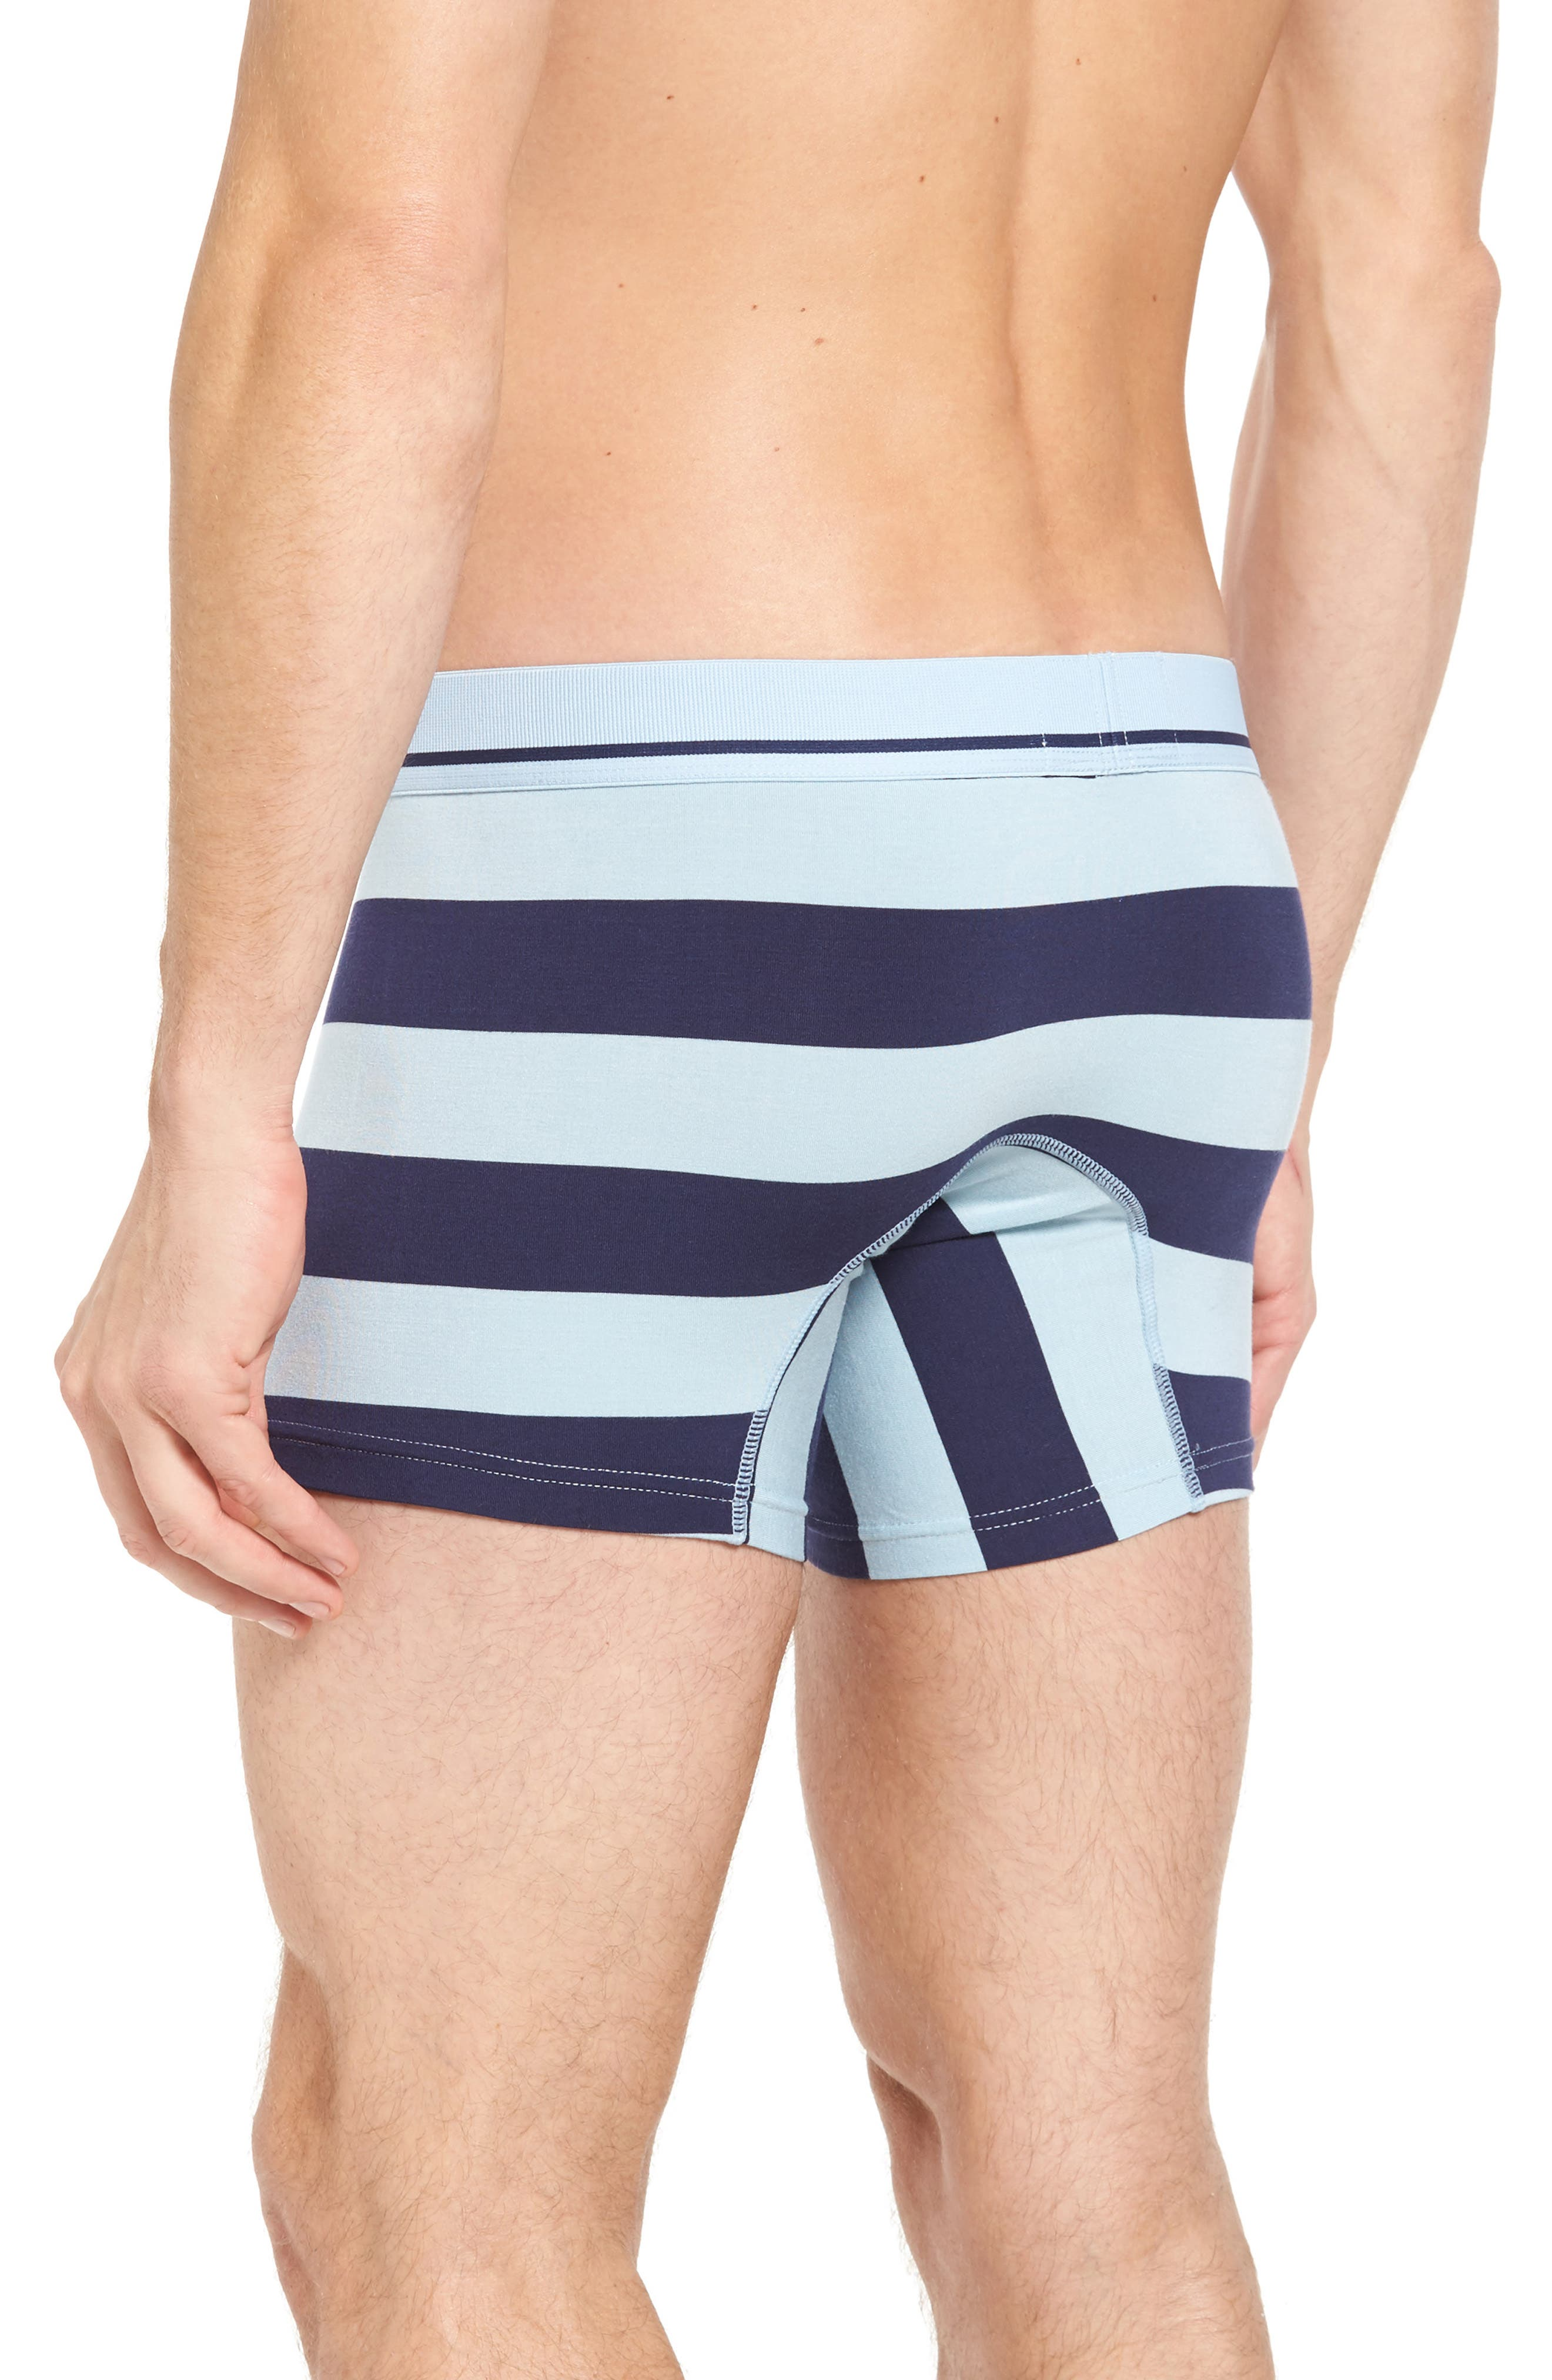 MOSMANN AUSTRALIA,                             Oliver Stretch Micromodal Boxer Briefs,                             Alternate thumbnail 2, color,                             410